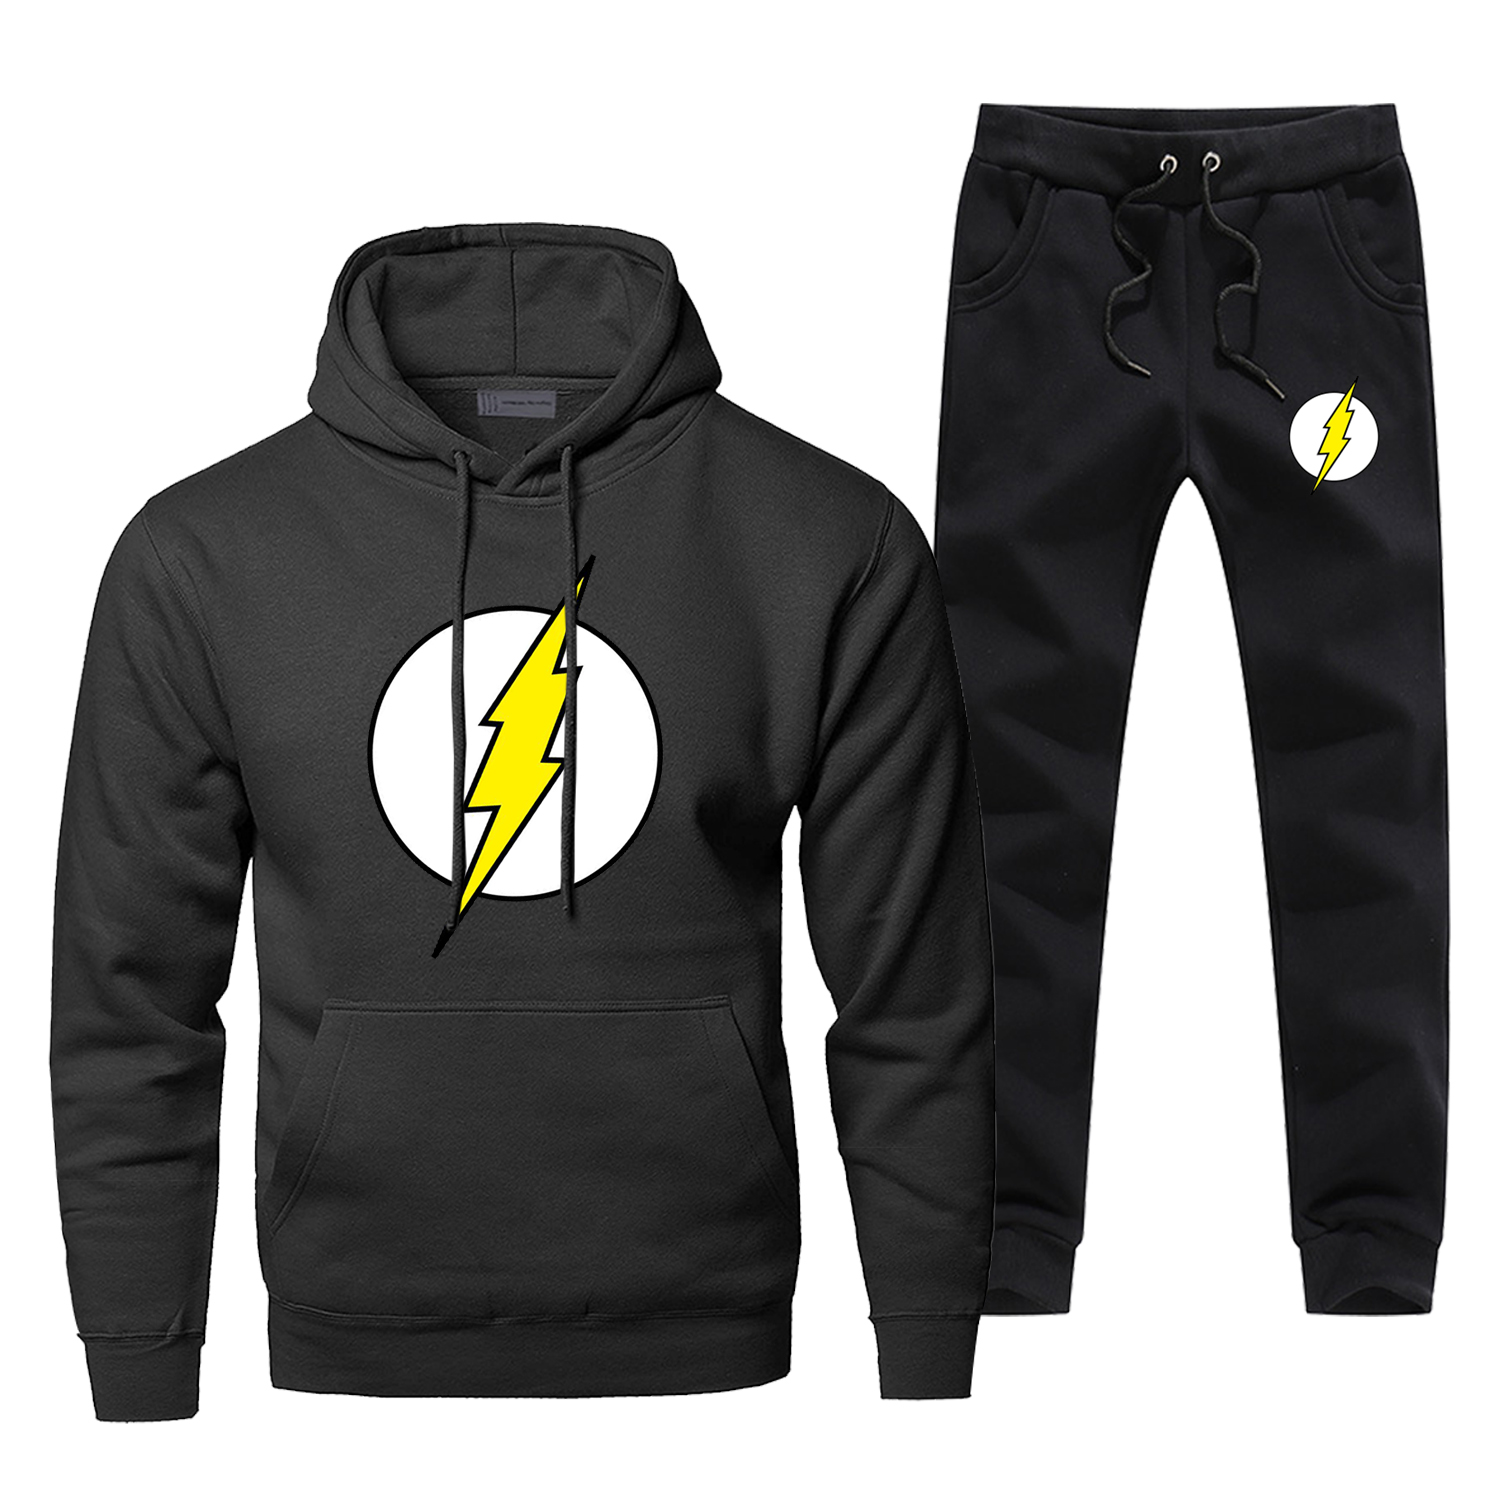 The Flash Barry Allen Hoodies Pants Sets Men Suit Tracksuit 2 Piece Set Tops Pant Sweatshirt Sweatpants STAR Autumn Sports Set